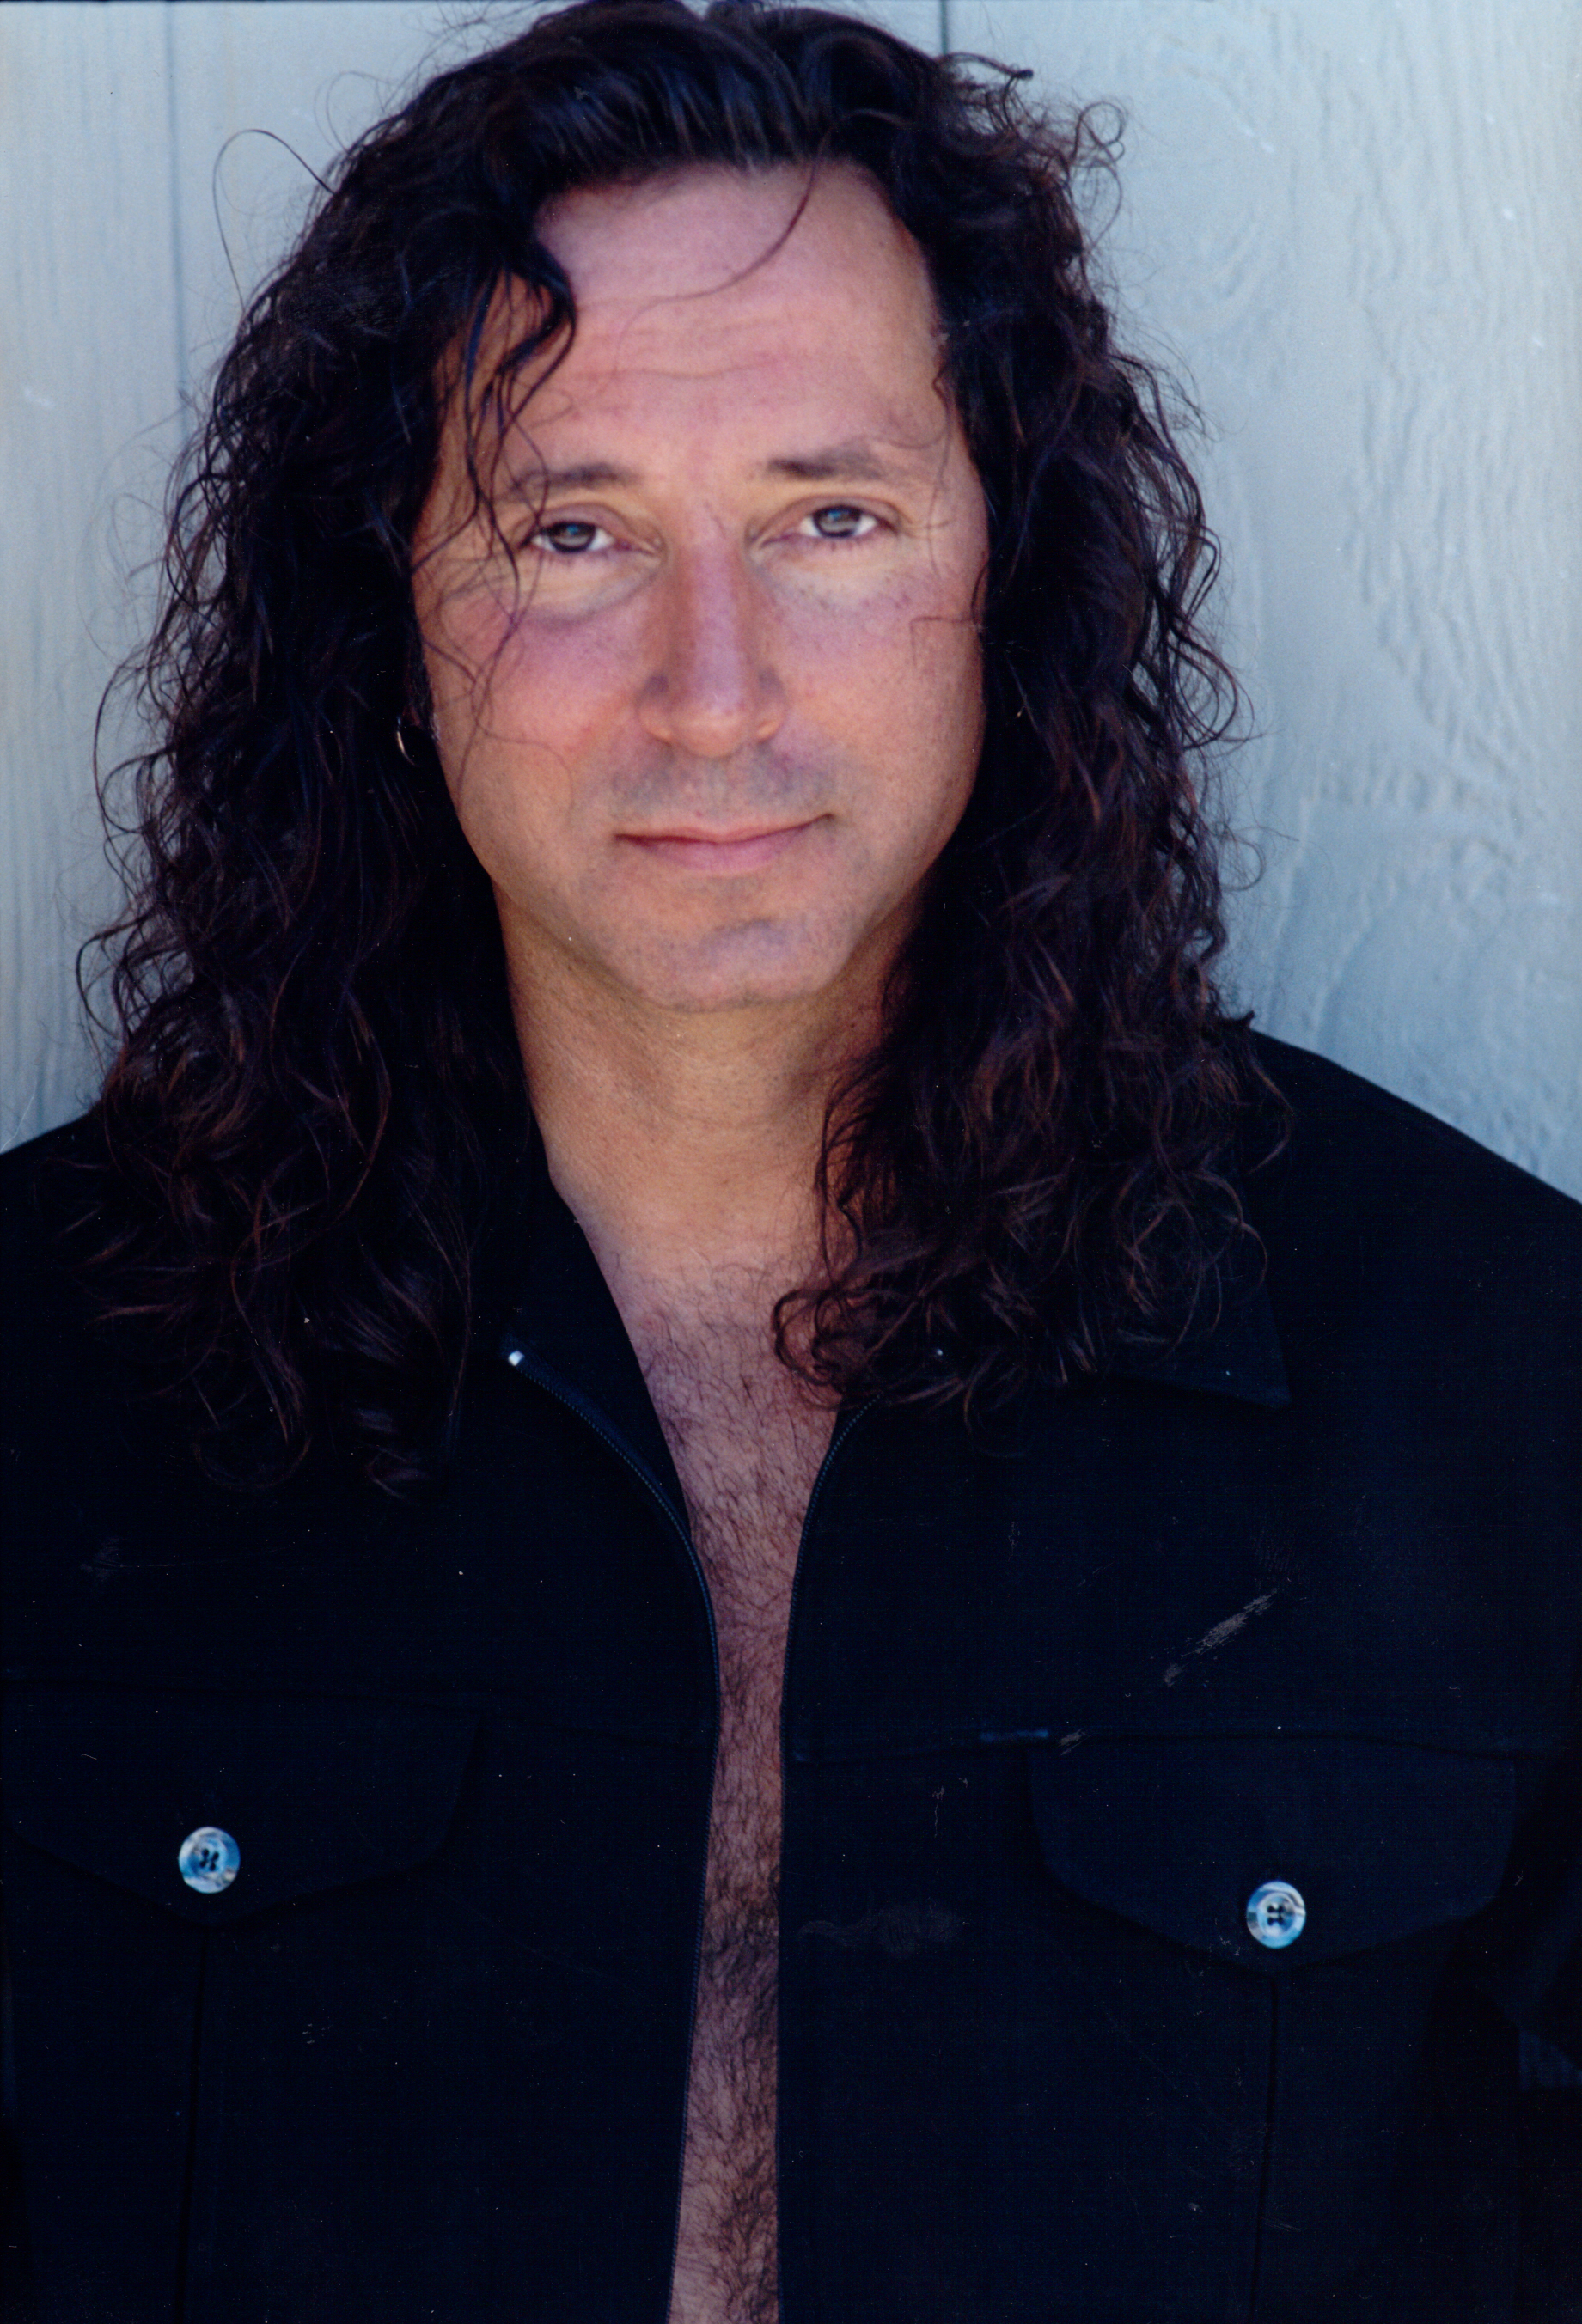 steve-augeri-photo05.jpg